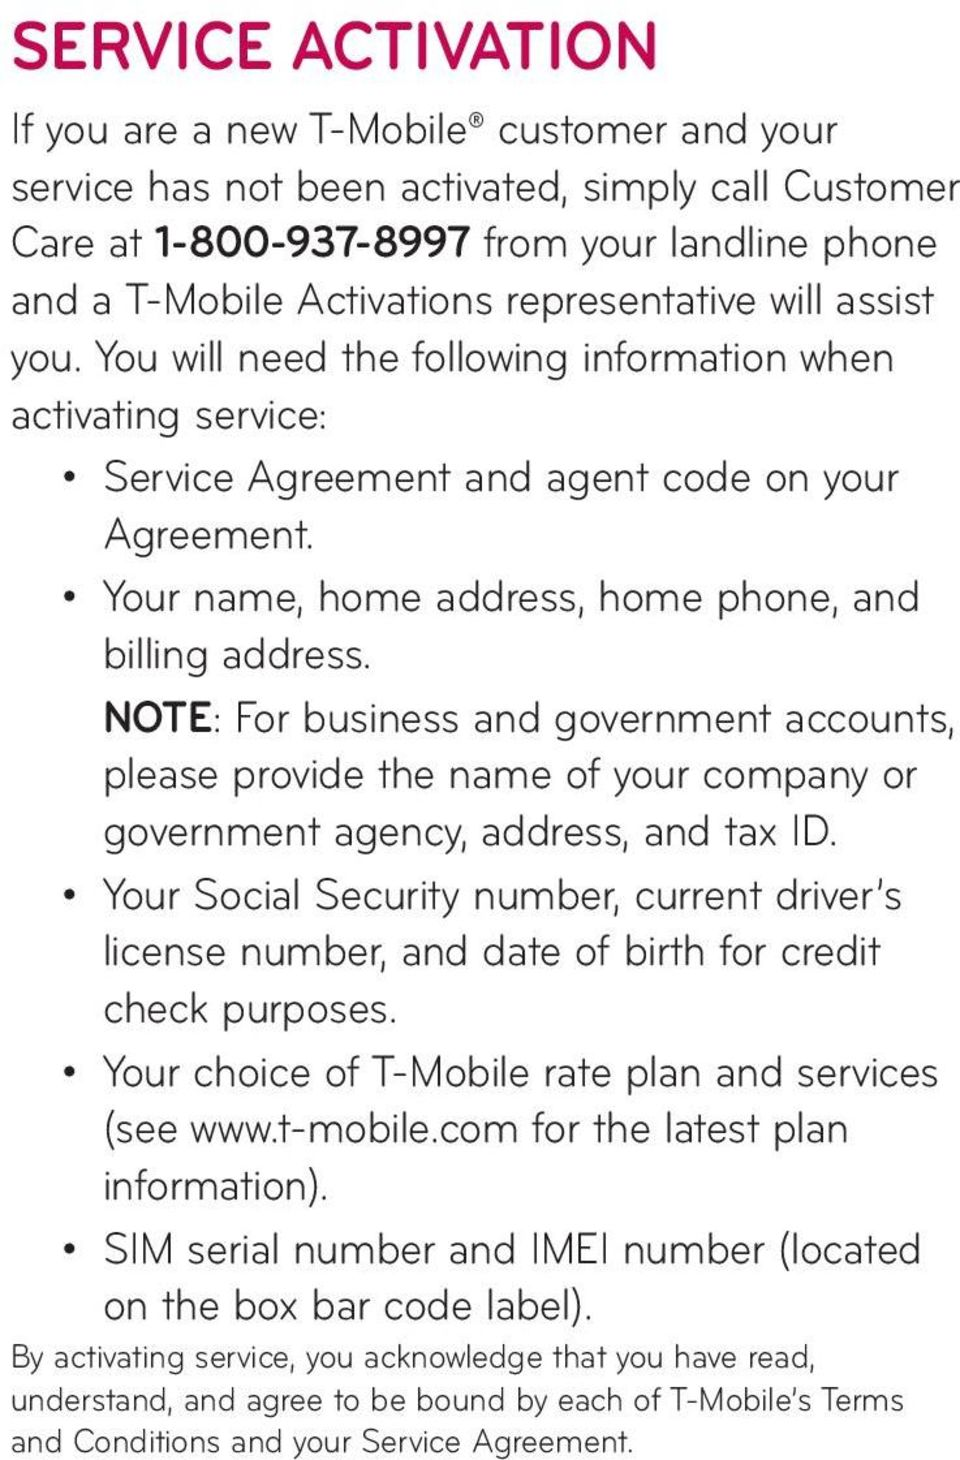 Your name, home address, home phone, and billing address. NOTE: For business and government accounts, please provide the name of your company or government agency, address, and tax ID.